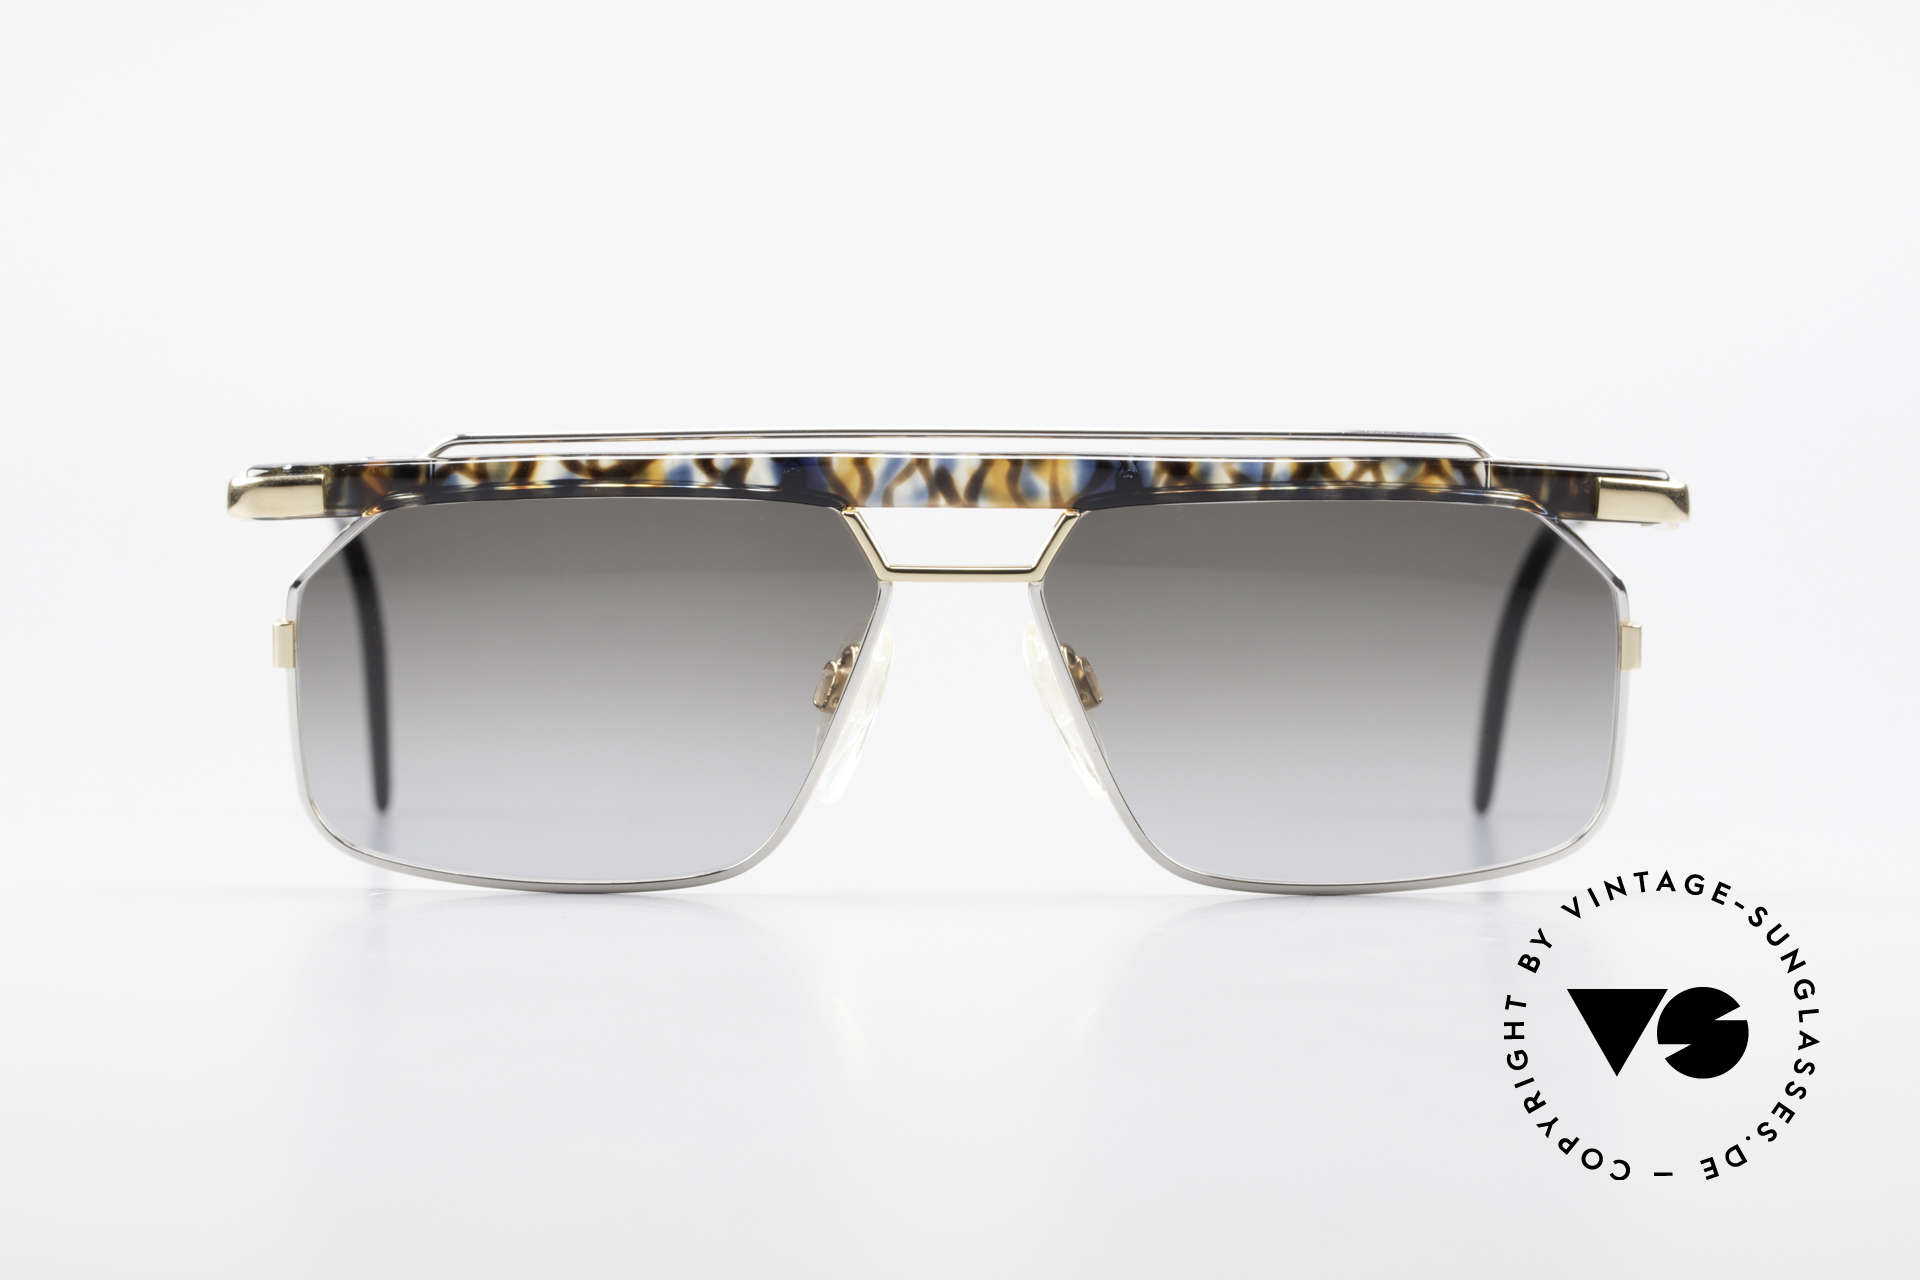 Cazal 752 Extraordinary Vintage Shades, one of the last models designed by CAri ZALloni, Made for Men